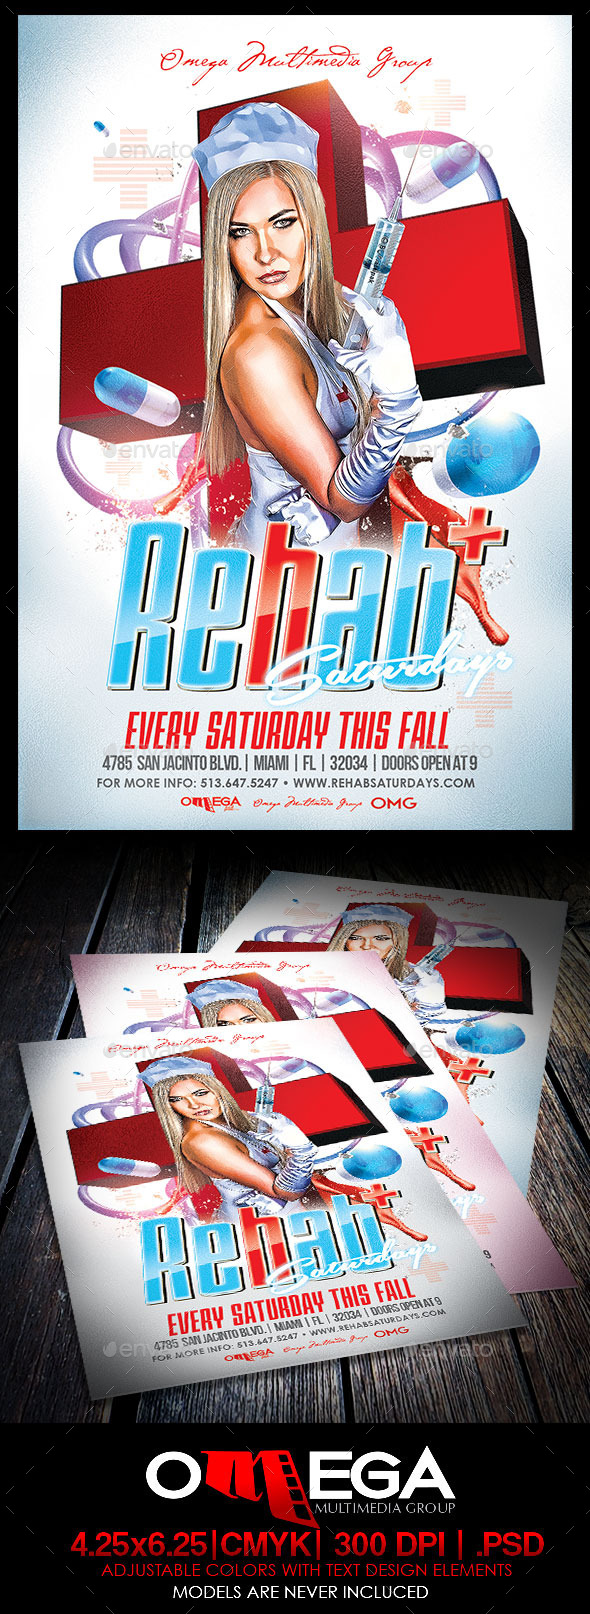 Rehab Saturdays - Events Flyers